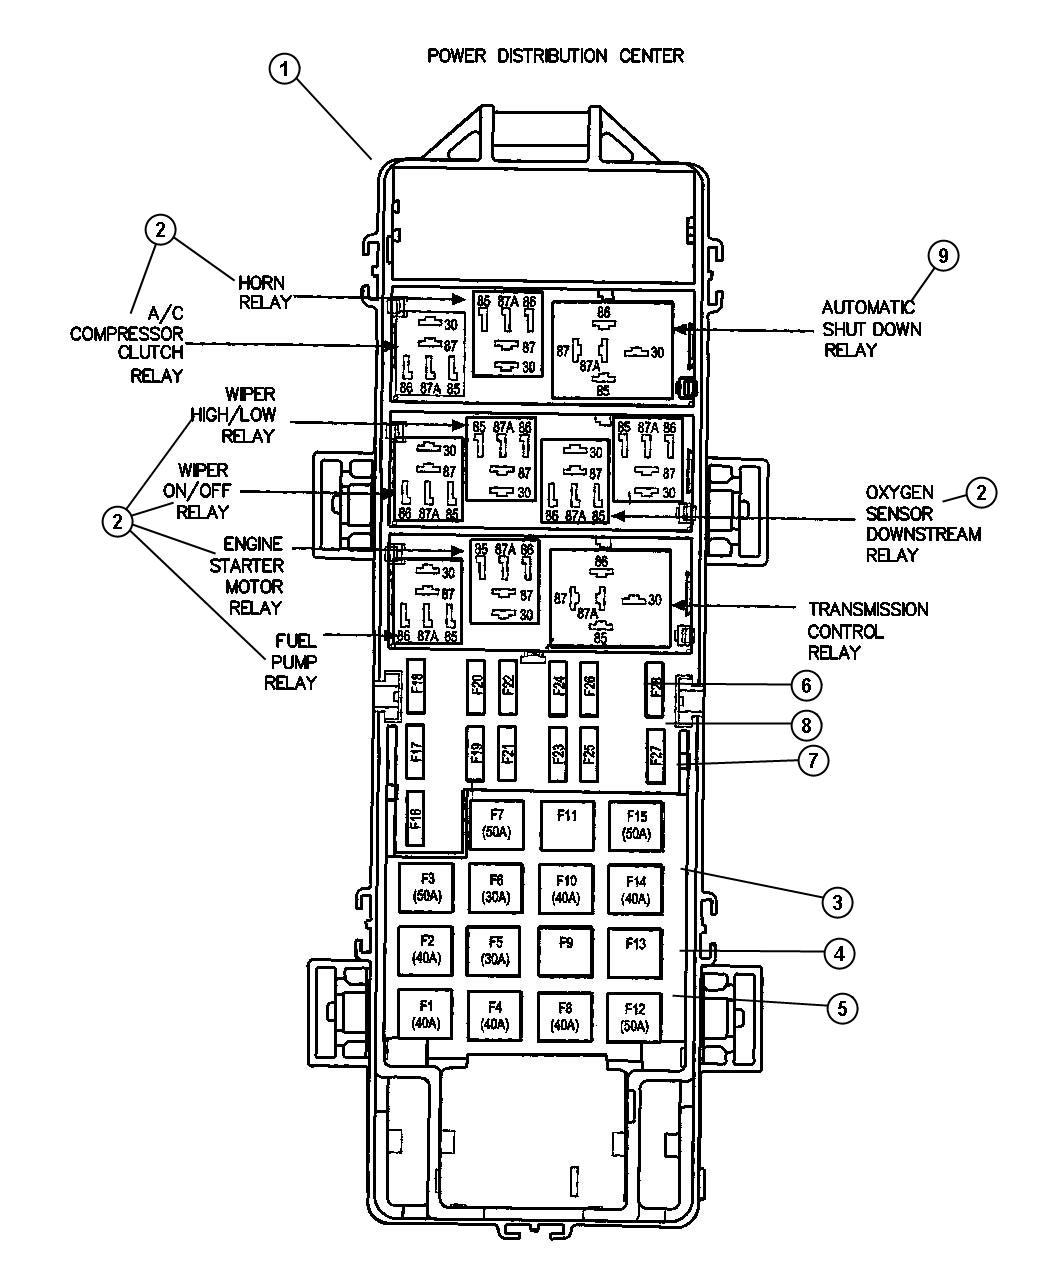 1989 jeep cherokee ignition switch diagram